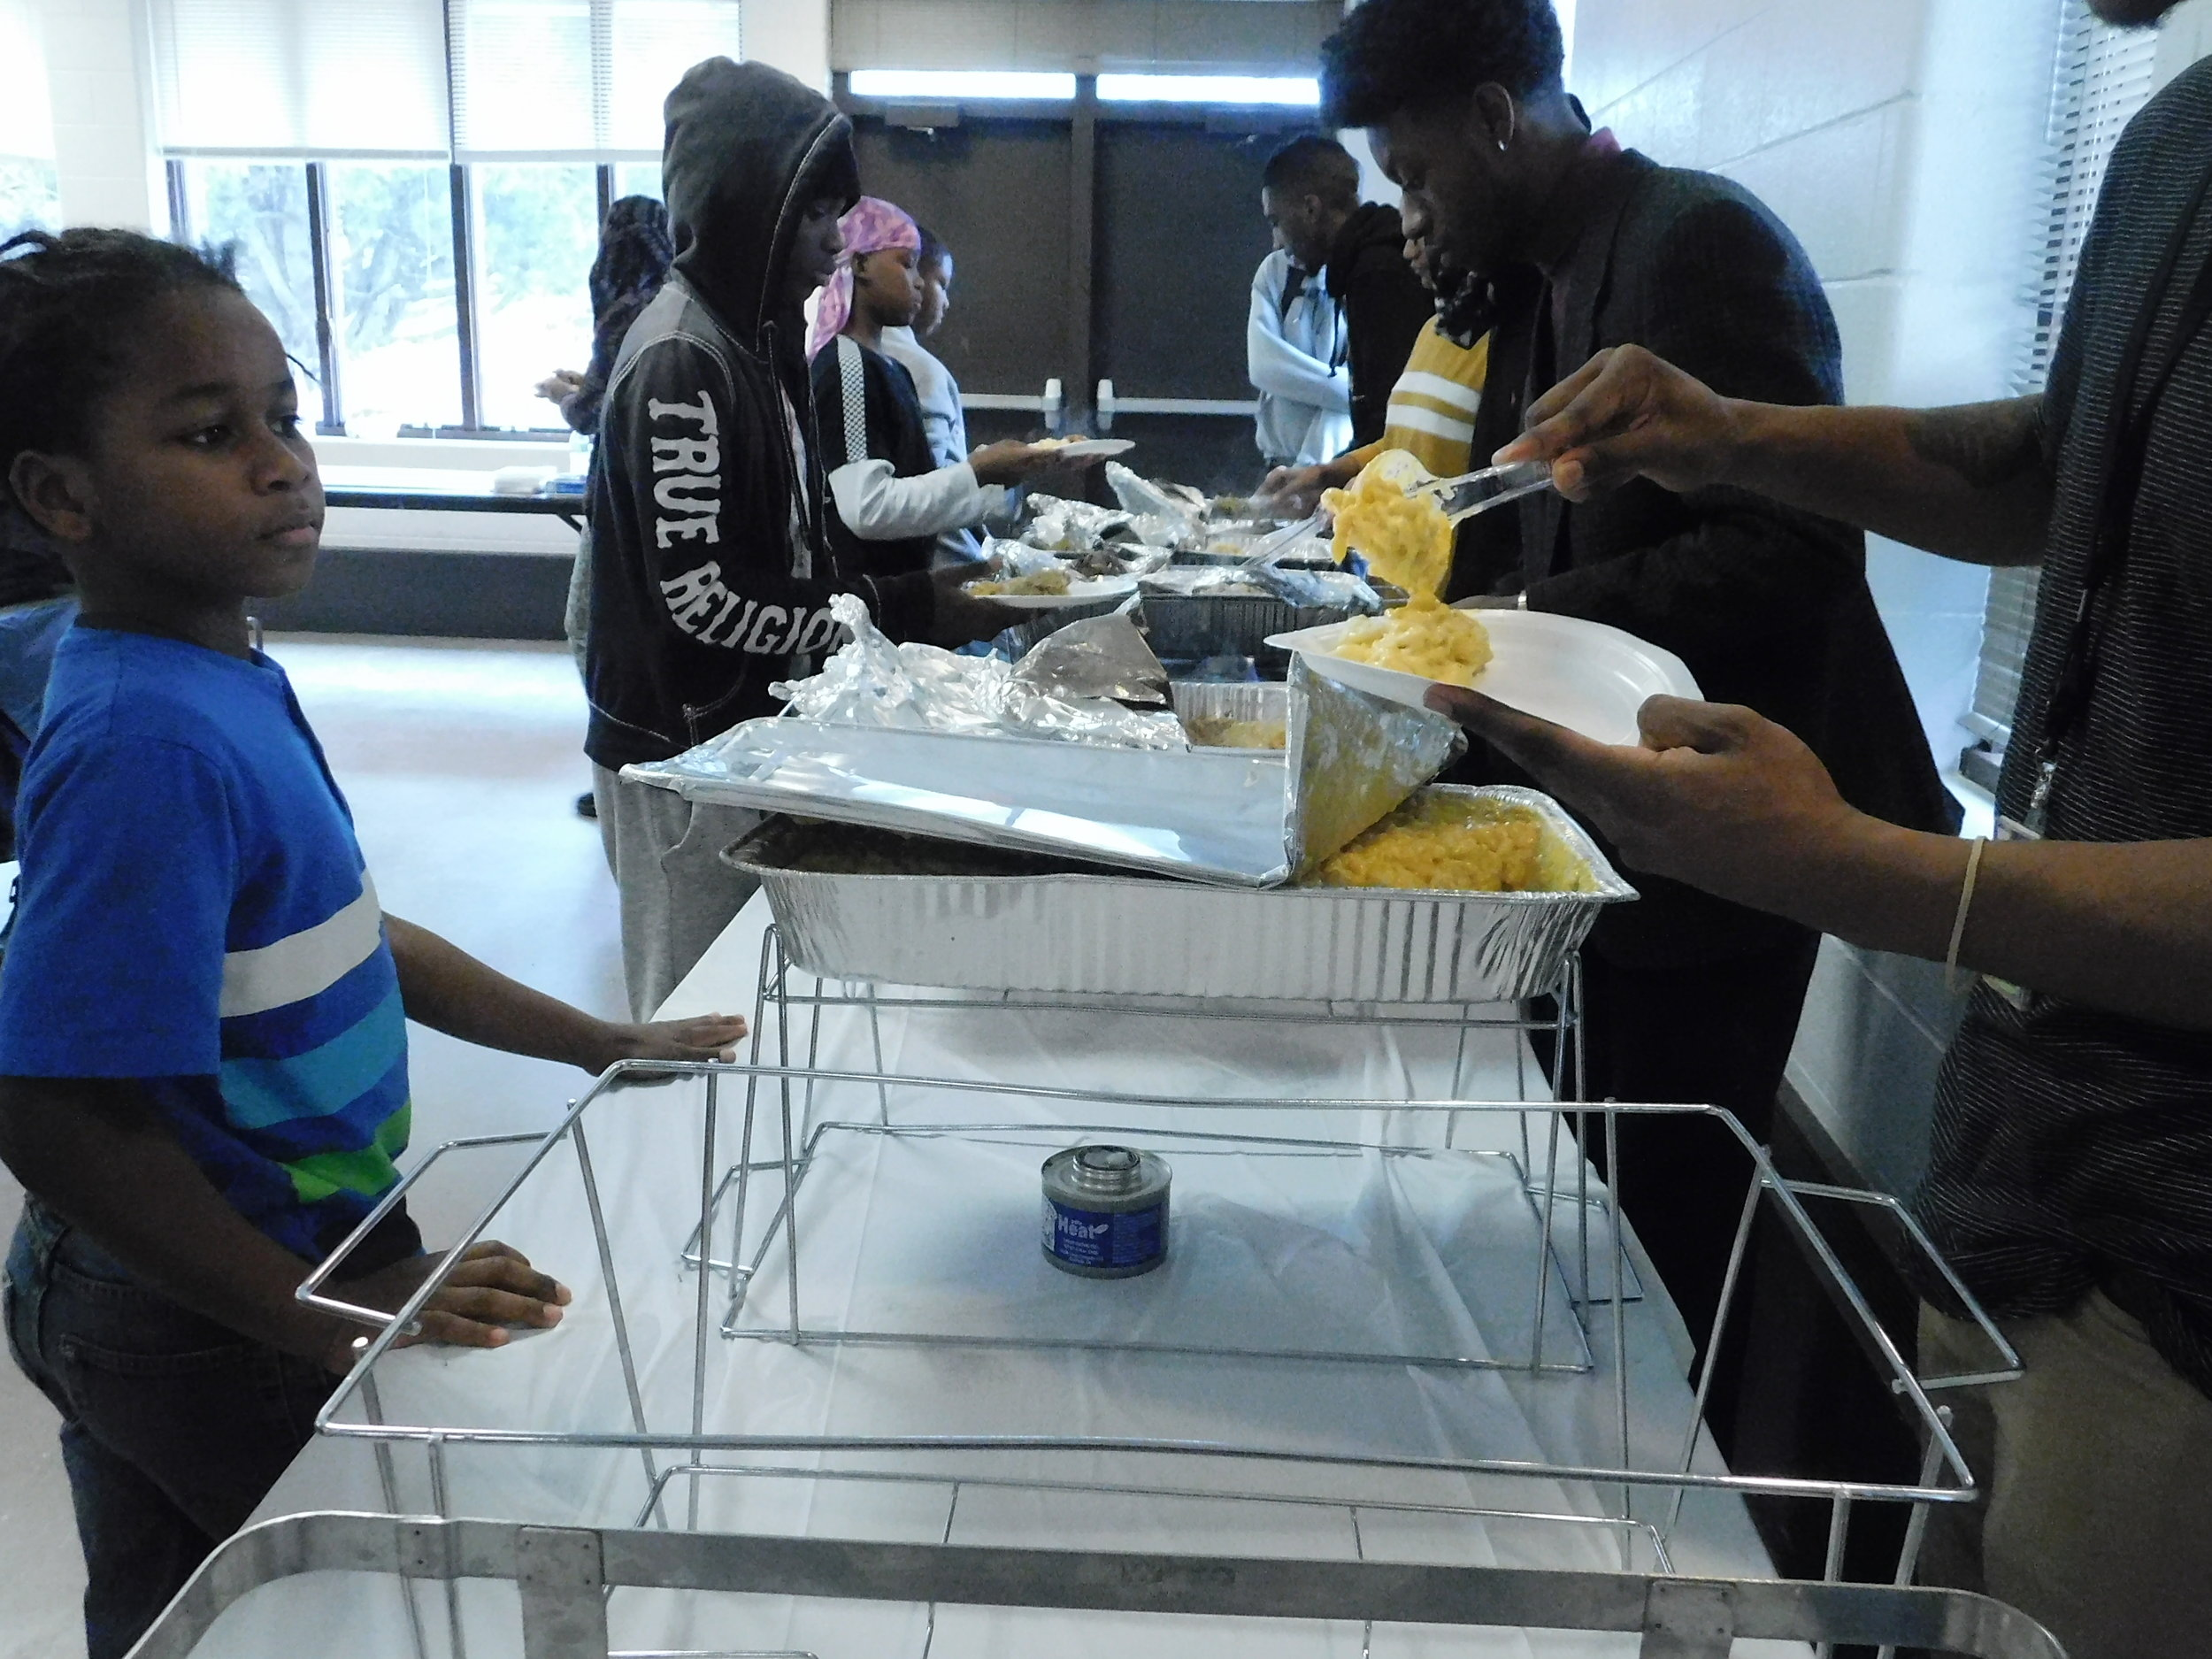 Homemade macaroni was available at the dinner. (Picture by Nyesha Stone)